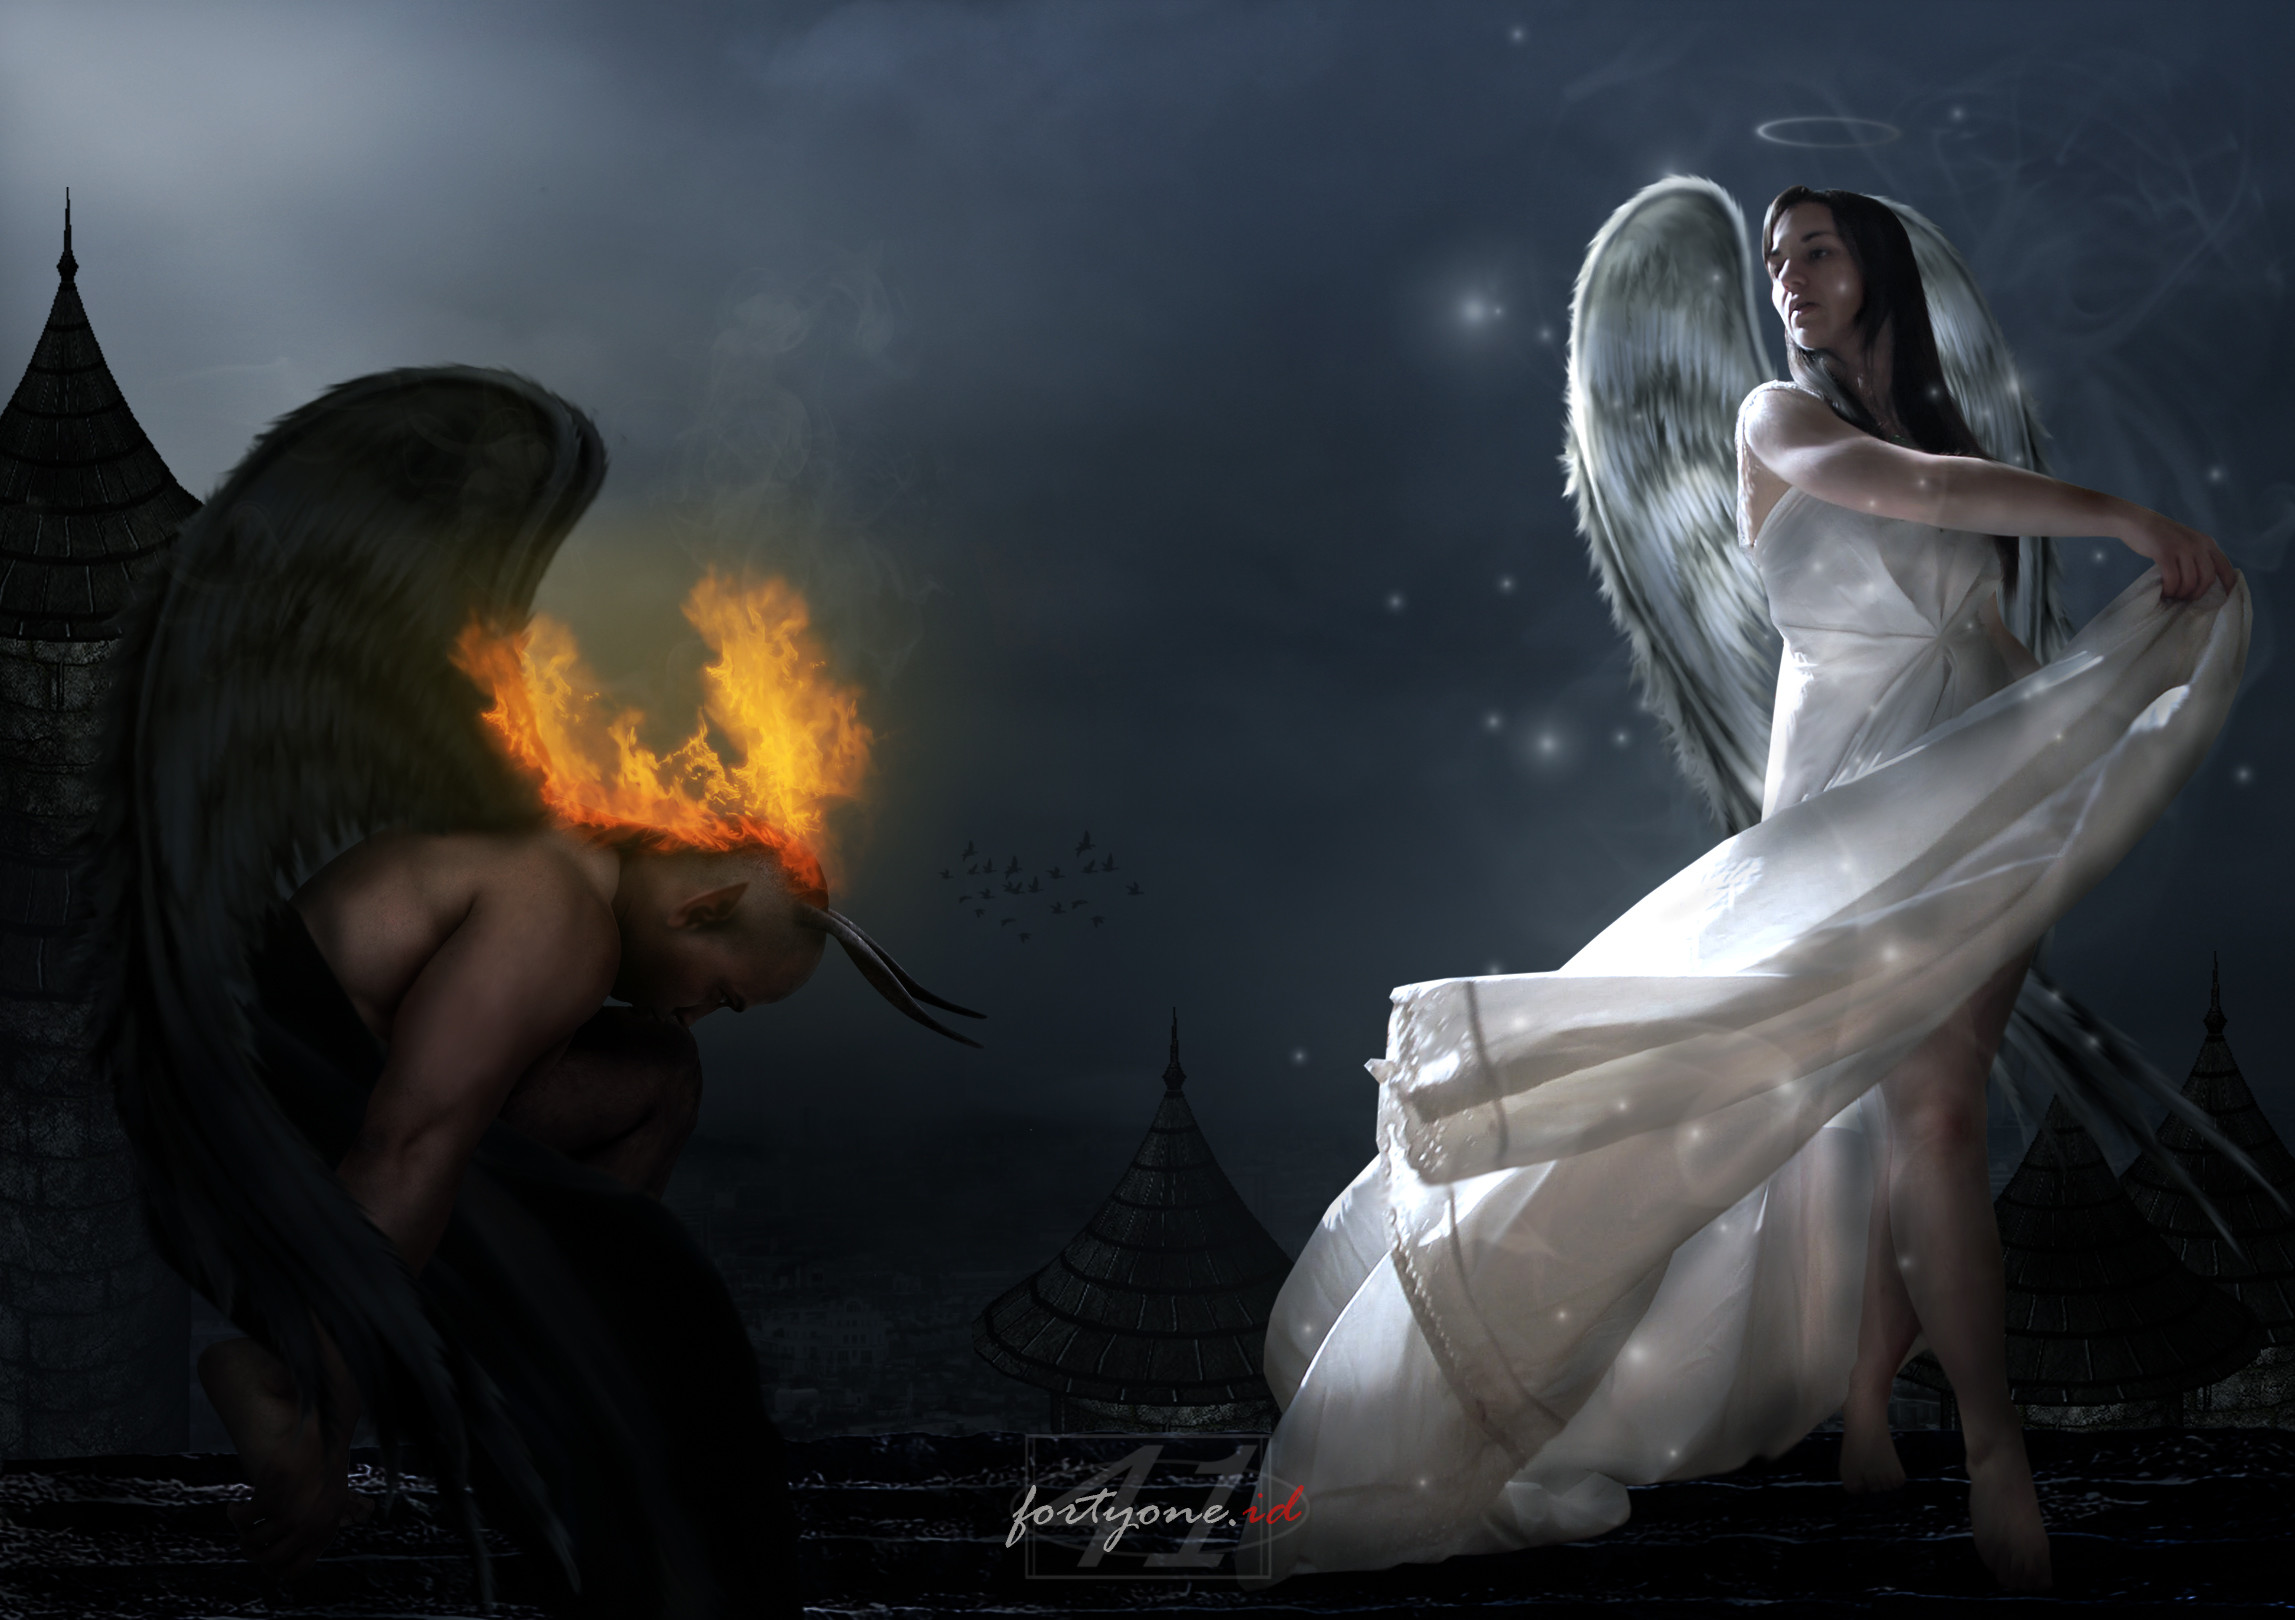 Demon and Angel wallpaper from Angels wallpapers